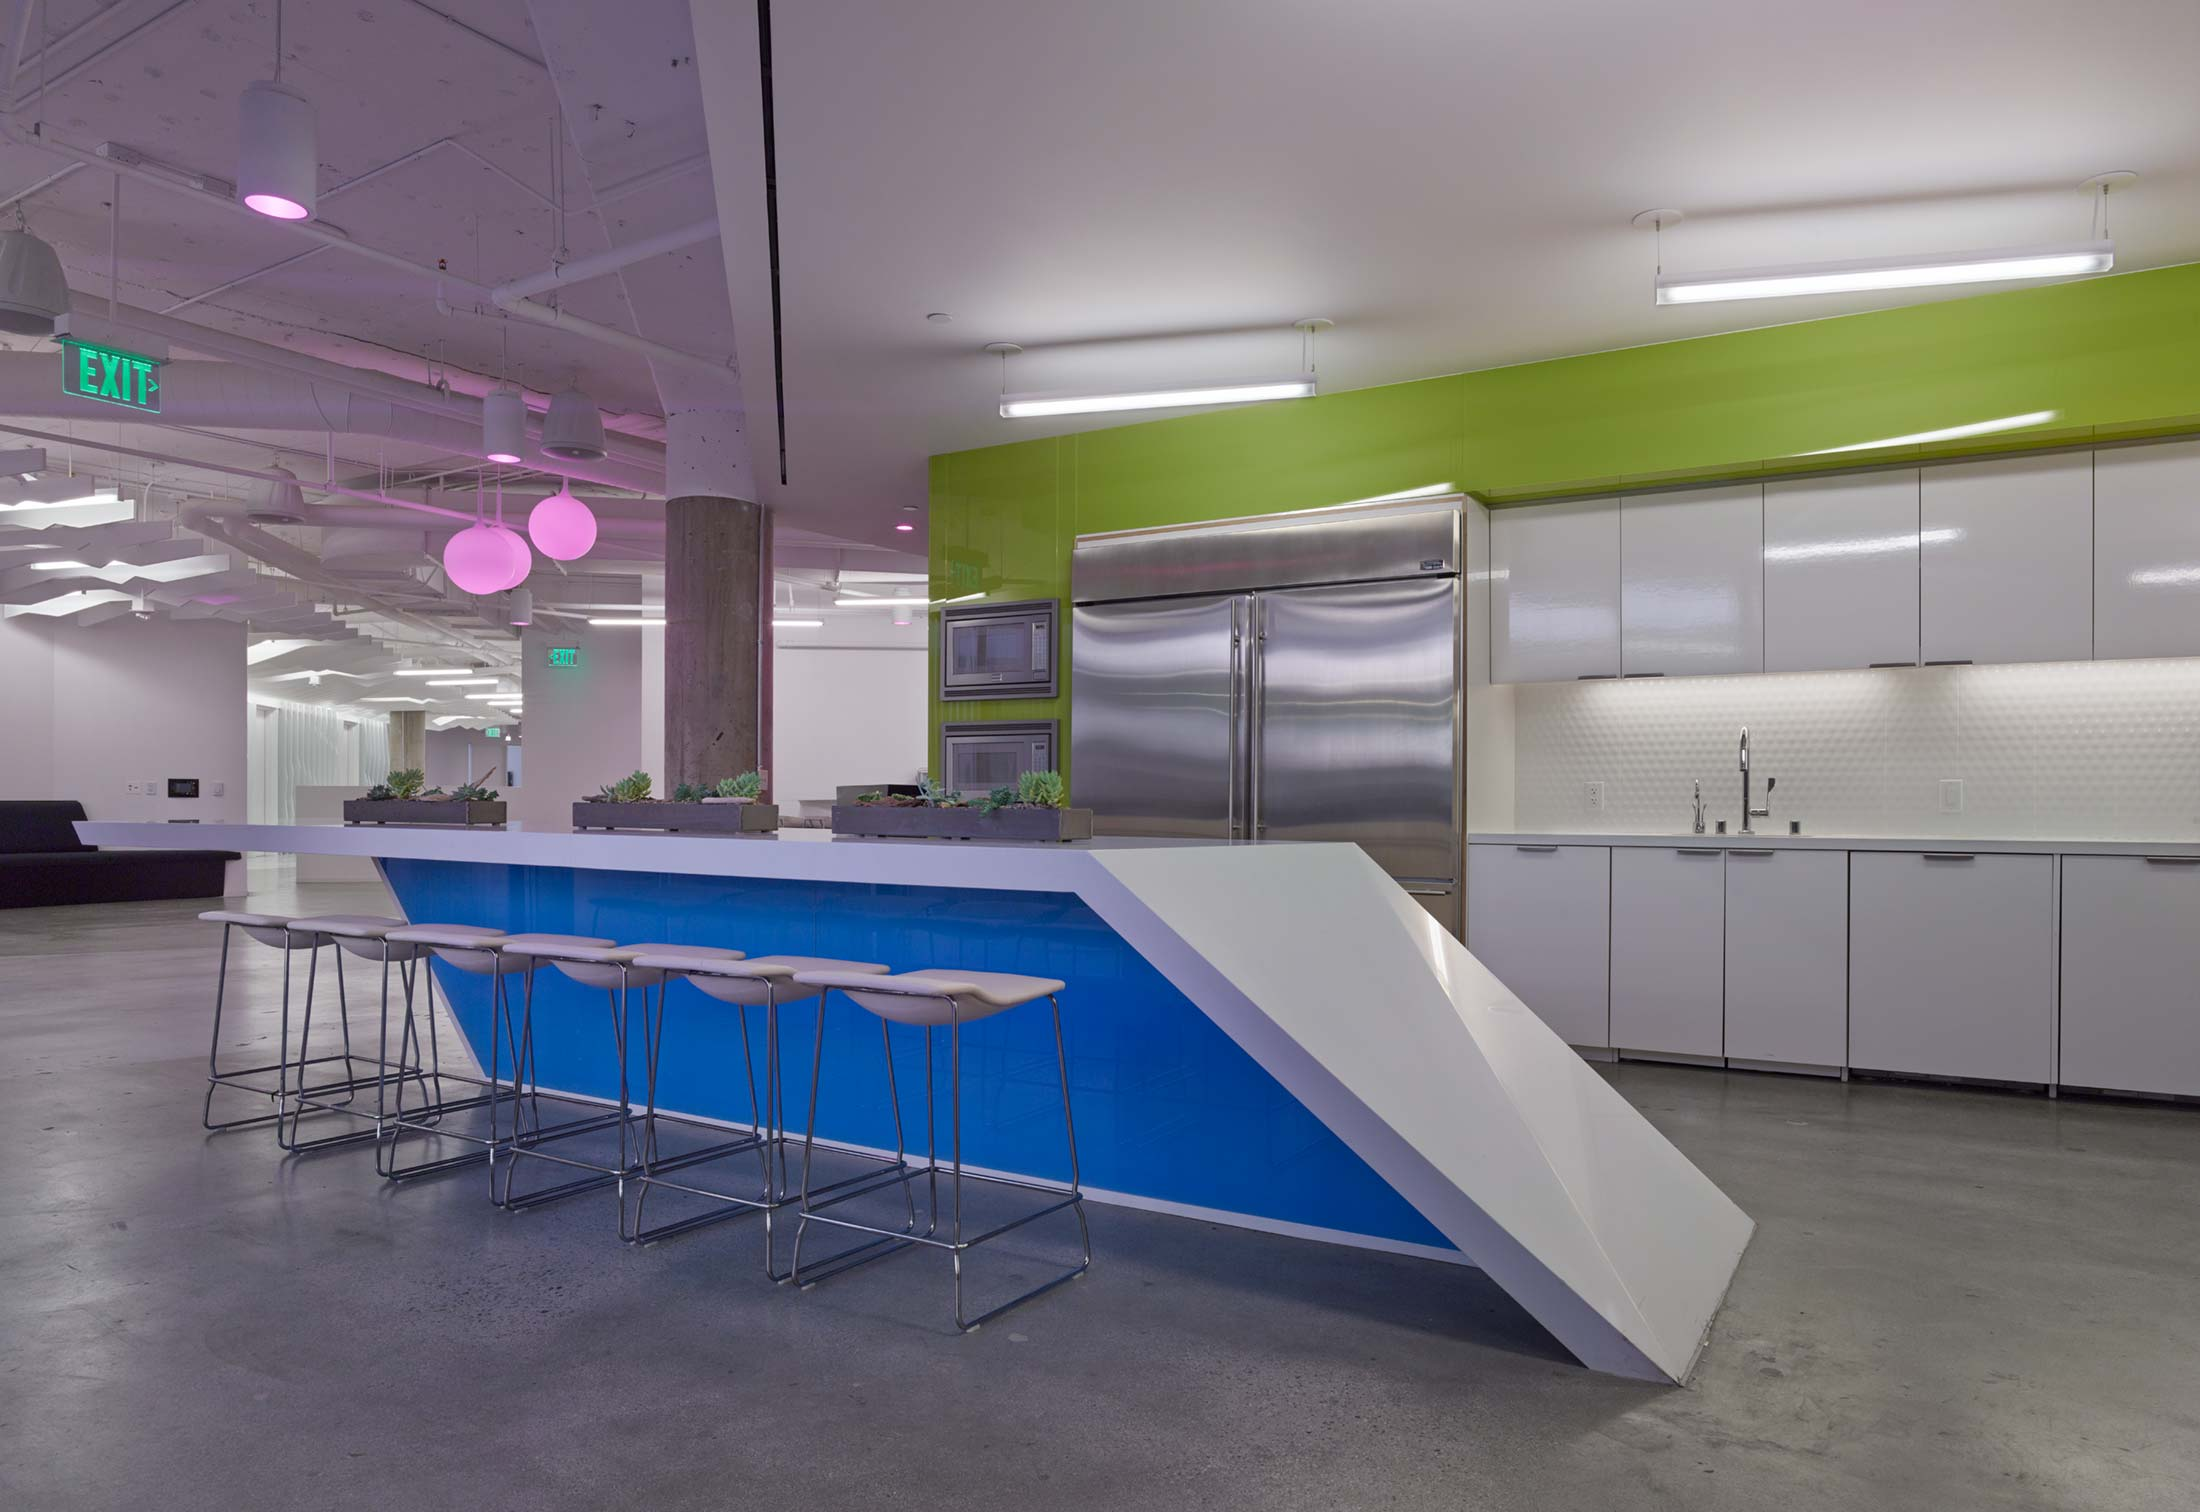 modern-architecture-commercial-interiors-workspace-kitchen-california-shubindonaldson-conill-advertising-1